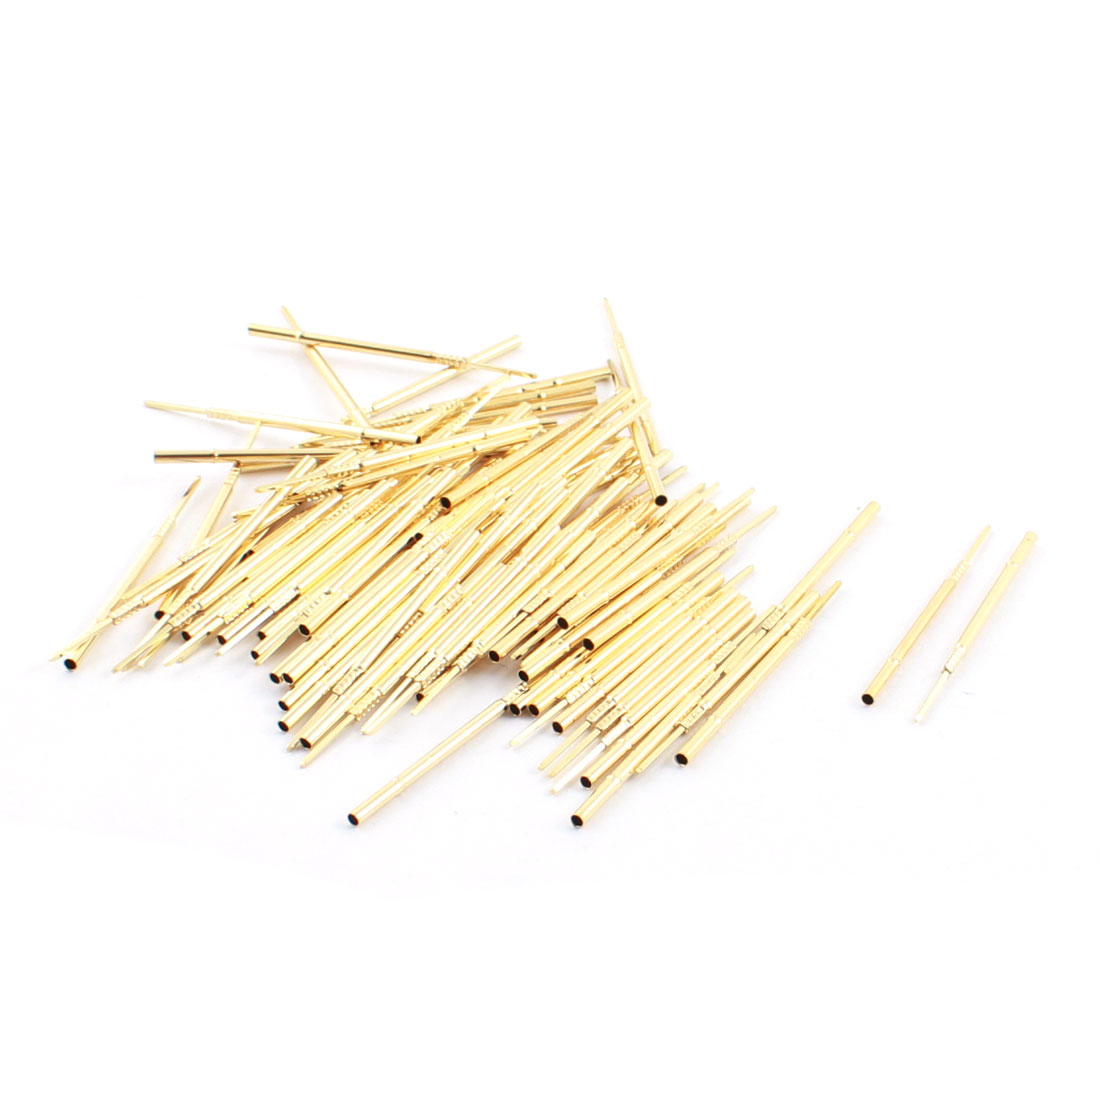 100Pcs R100-4W 0.6x0.6mm Tip Test Probe Pins Receptacles 39mm Long for PCB Board